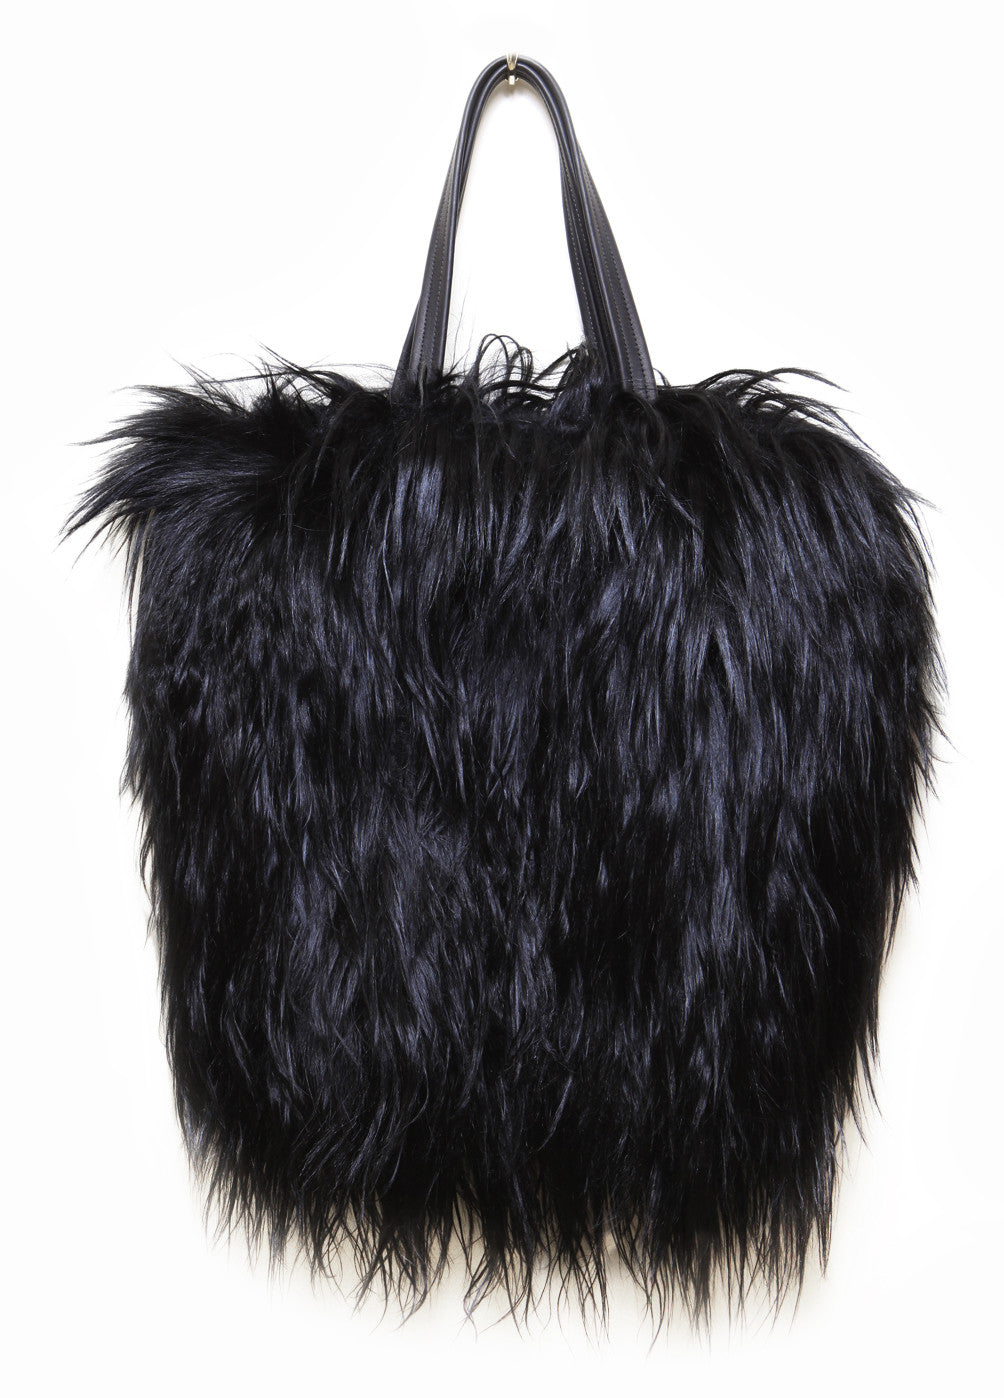 Goat Hair Fur Tote Wendy Nichol Handbag Purse Designer Handmade in NYC New York City interior pocket Huge Large Furry Black Tote High Quality Leather